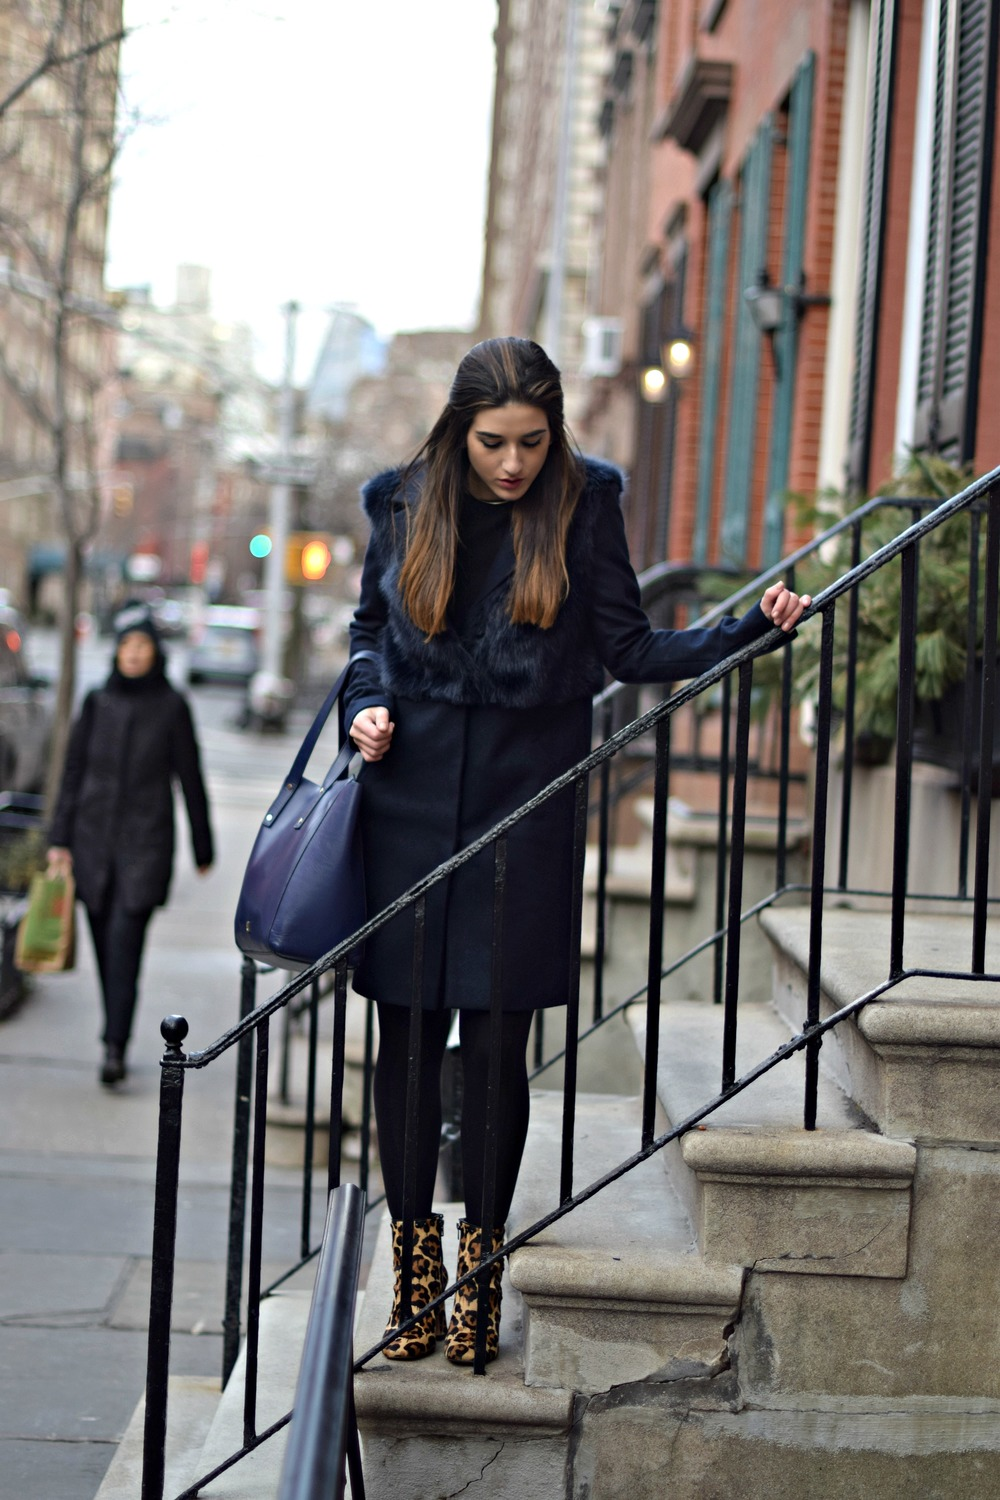 Navy Coat Coach Leopard Booties Louboutins & Love Fashion Blog Esther Santer NYC Street Style Blogger Outfit OOTD Fur Topshop Shopping Girl Women Swag Photoshoot Model Beautiful Winter Inspo NYFW Shoes Tights Ivanka Trump Soho Tote Hair City Lifestyle.jpg